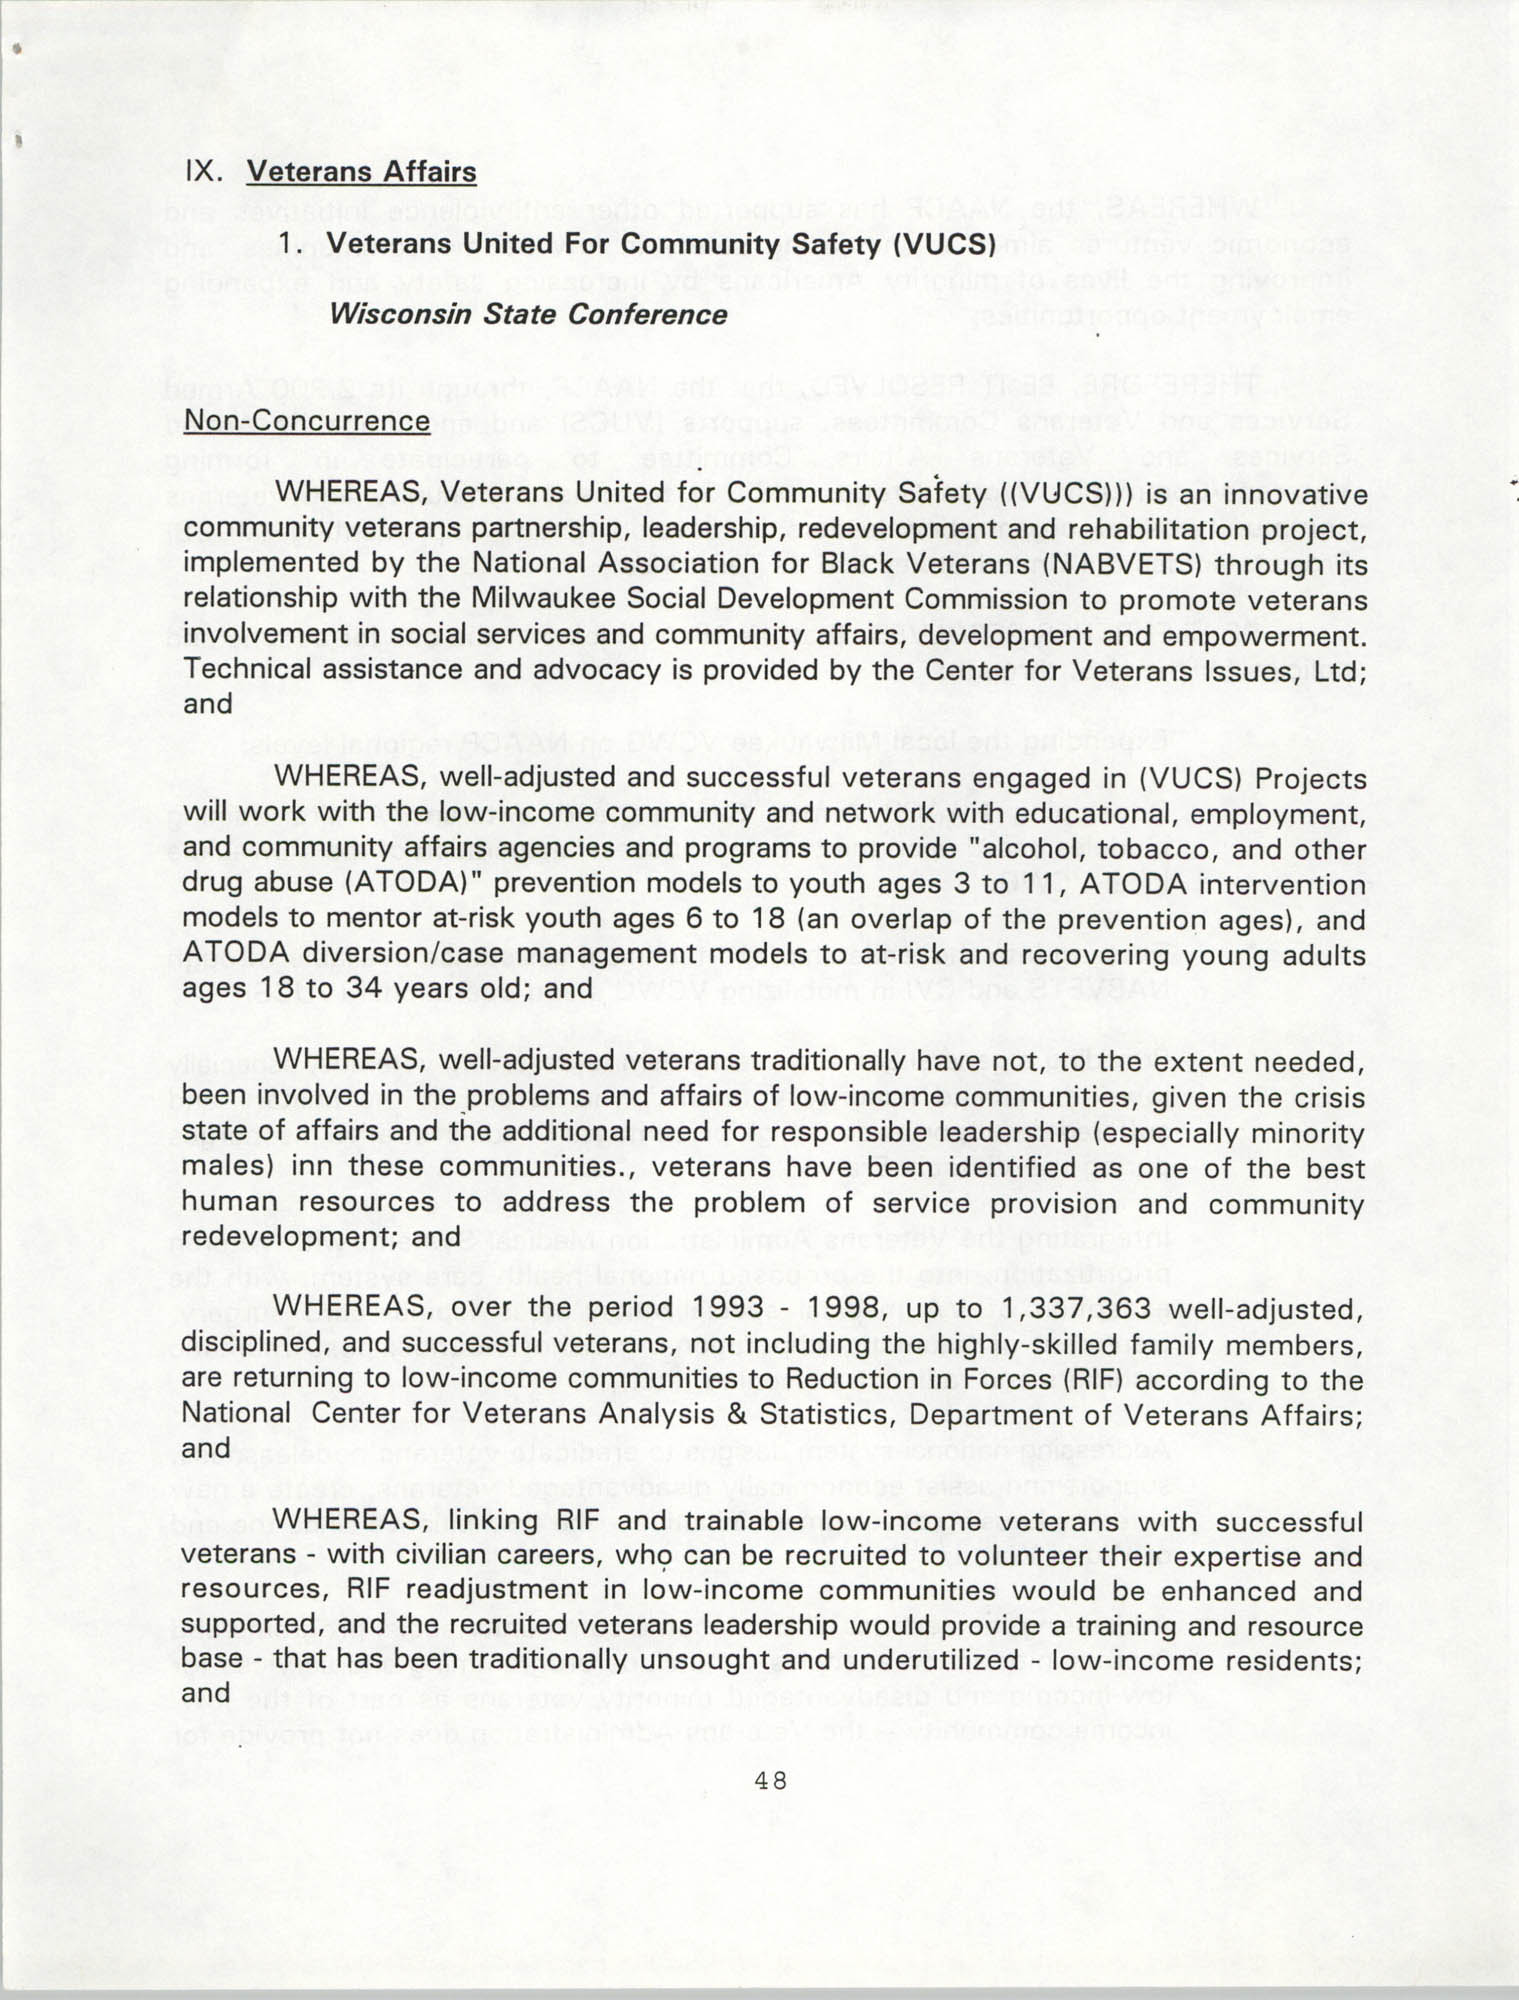 Resolutions Submitted Under Article X, Section 2 of the Constitution of the NAACP, 1994, Page 48